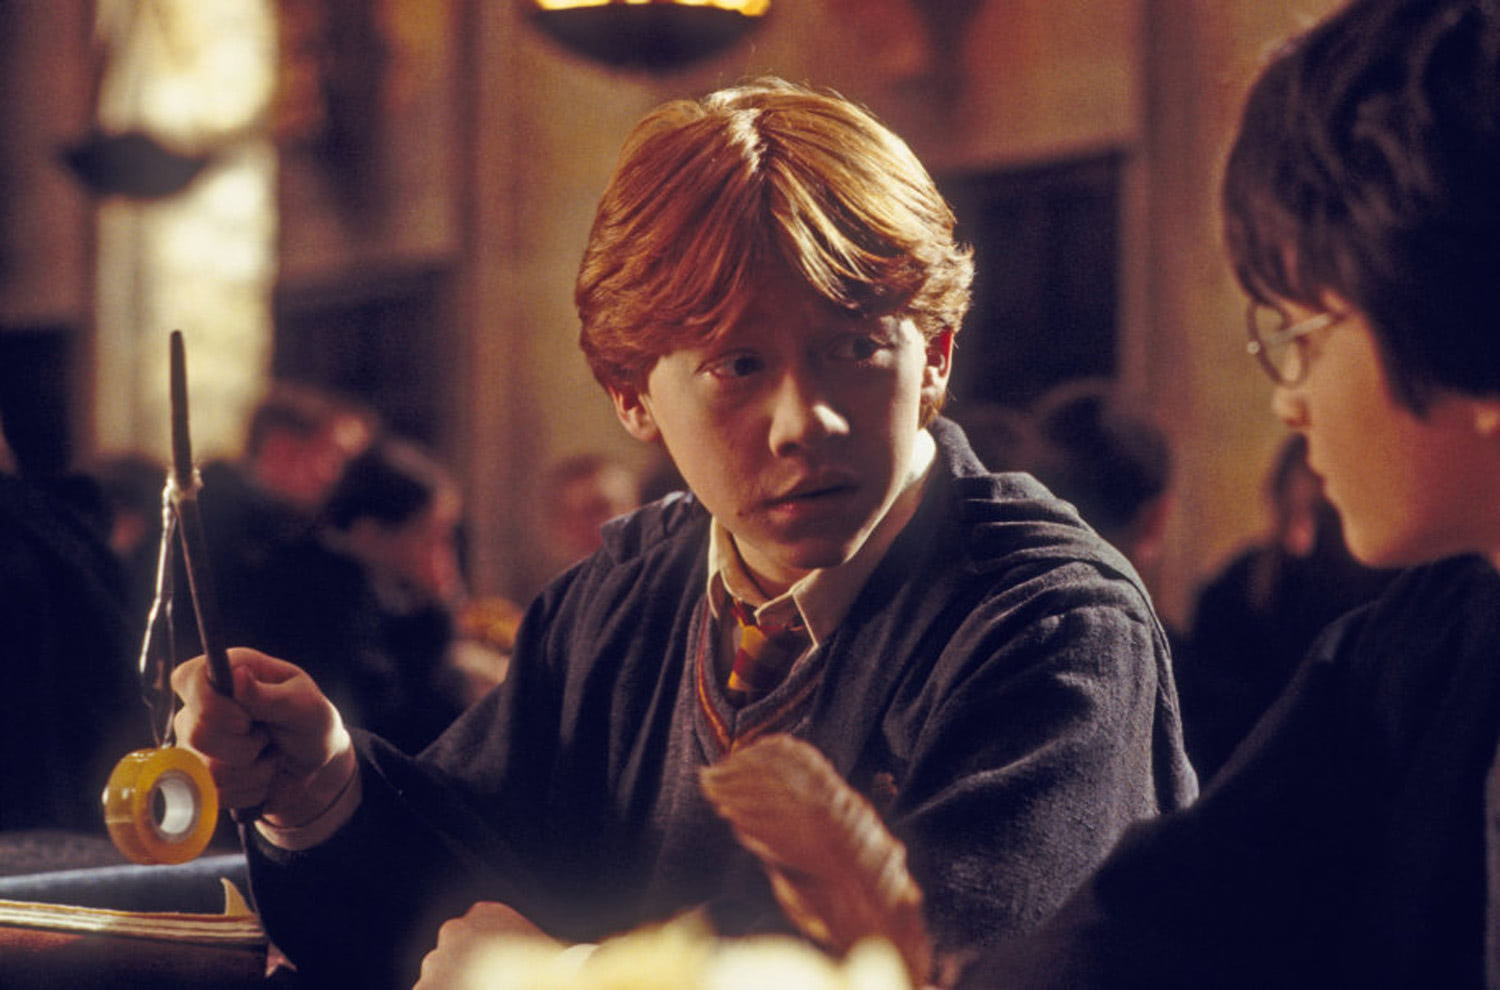 Ron with the broken wand